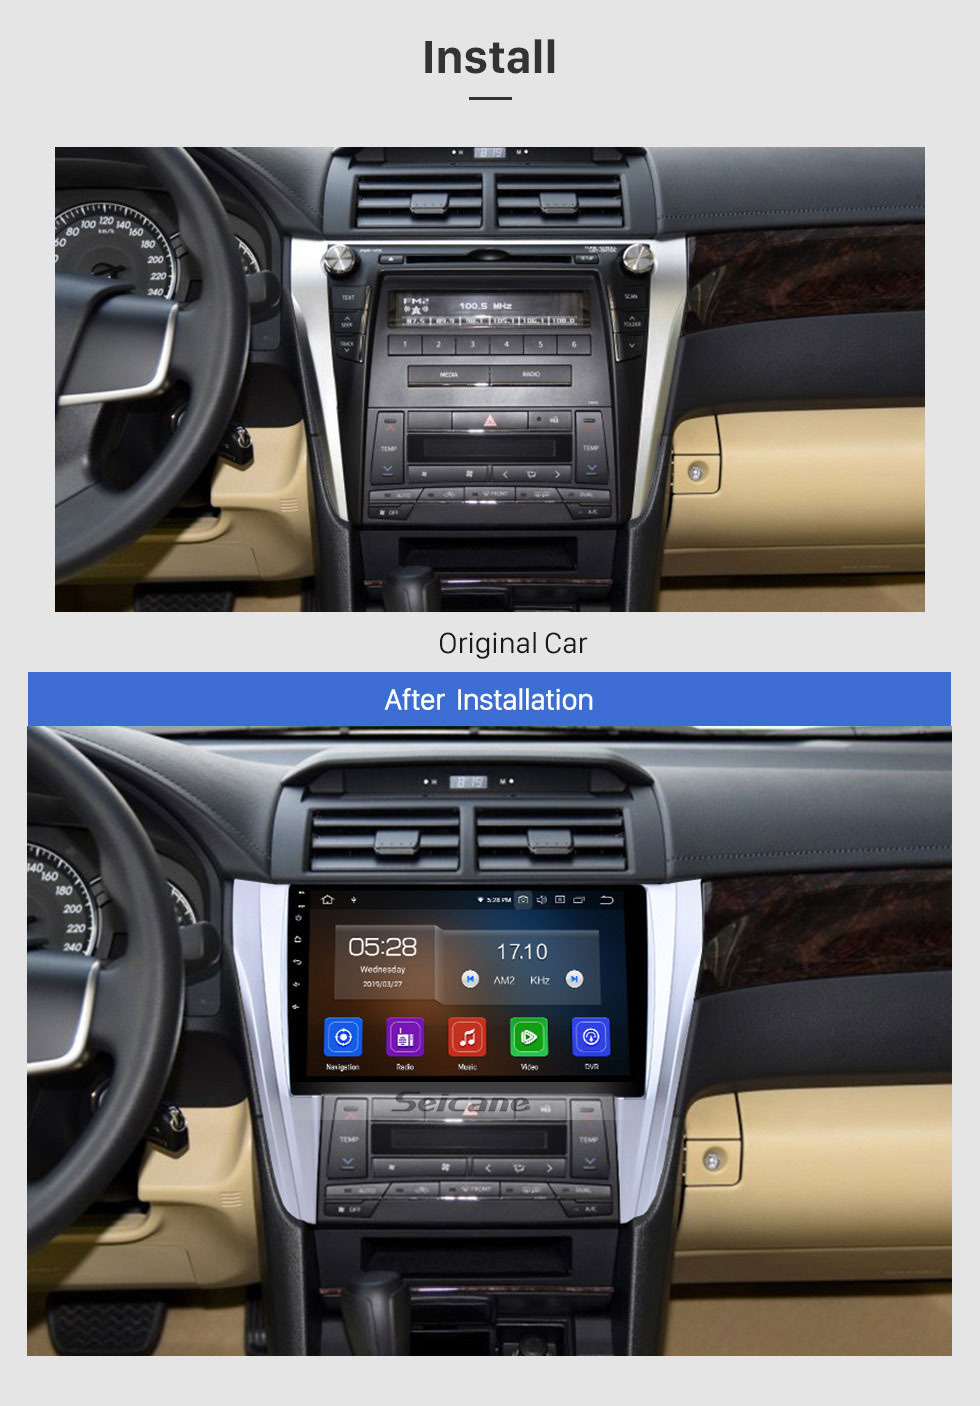 Seicane 10.1 Inch Android 10.0 Bluetooth Radio For 2015 2016 2017 Toyota CAMRY 3G WiFi GPS Navigation system TPMS DVR OBD II Rear camera AUX Headrest Monitor Control USB SD Video 3G WiFi Capacitive Touch Screen